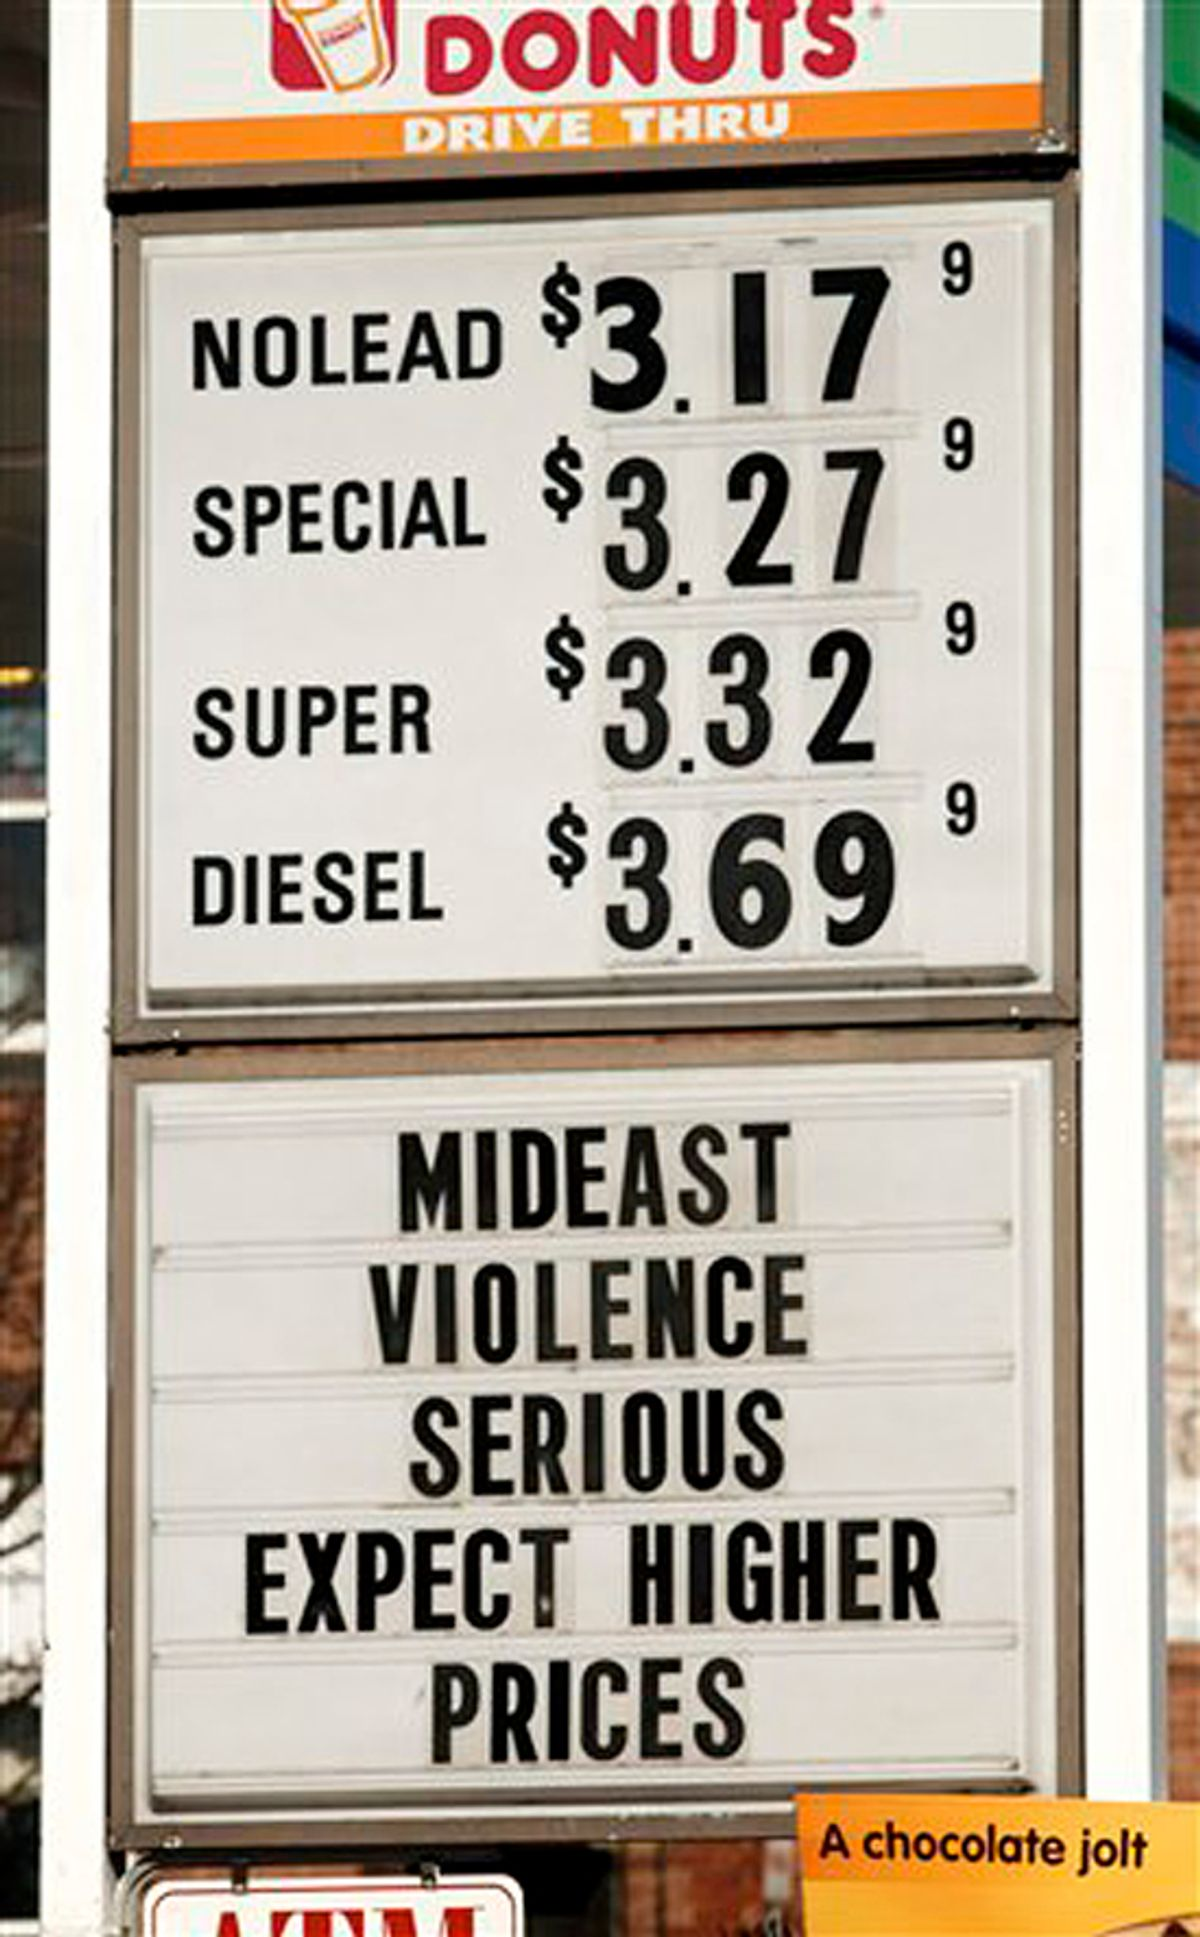 A sign advertises gas and diesel prices, plus gives an explanation to customers, at a service station in Easthampton, Mass, Wednesday, Feb. 23, 2011. Oil prices rose past $99 a barrel on Wednesday as forces loyal to Libya's Moammar Gadhafi clashed with protesters expanding their control over parts of the country. (AP Photo/ Shana Sureck)  (Shana Sureck)